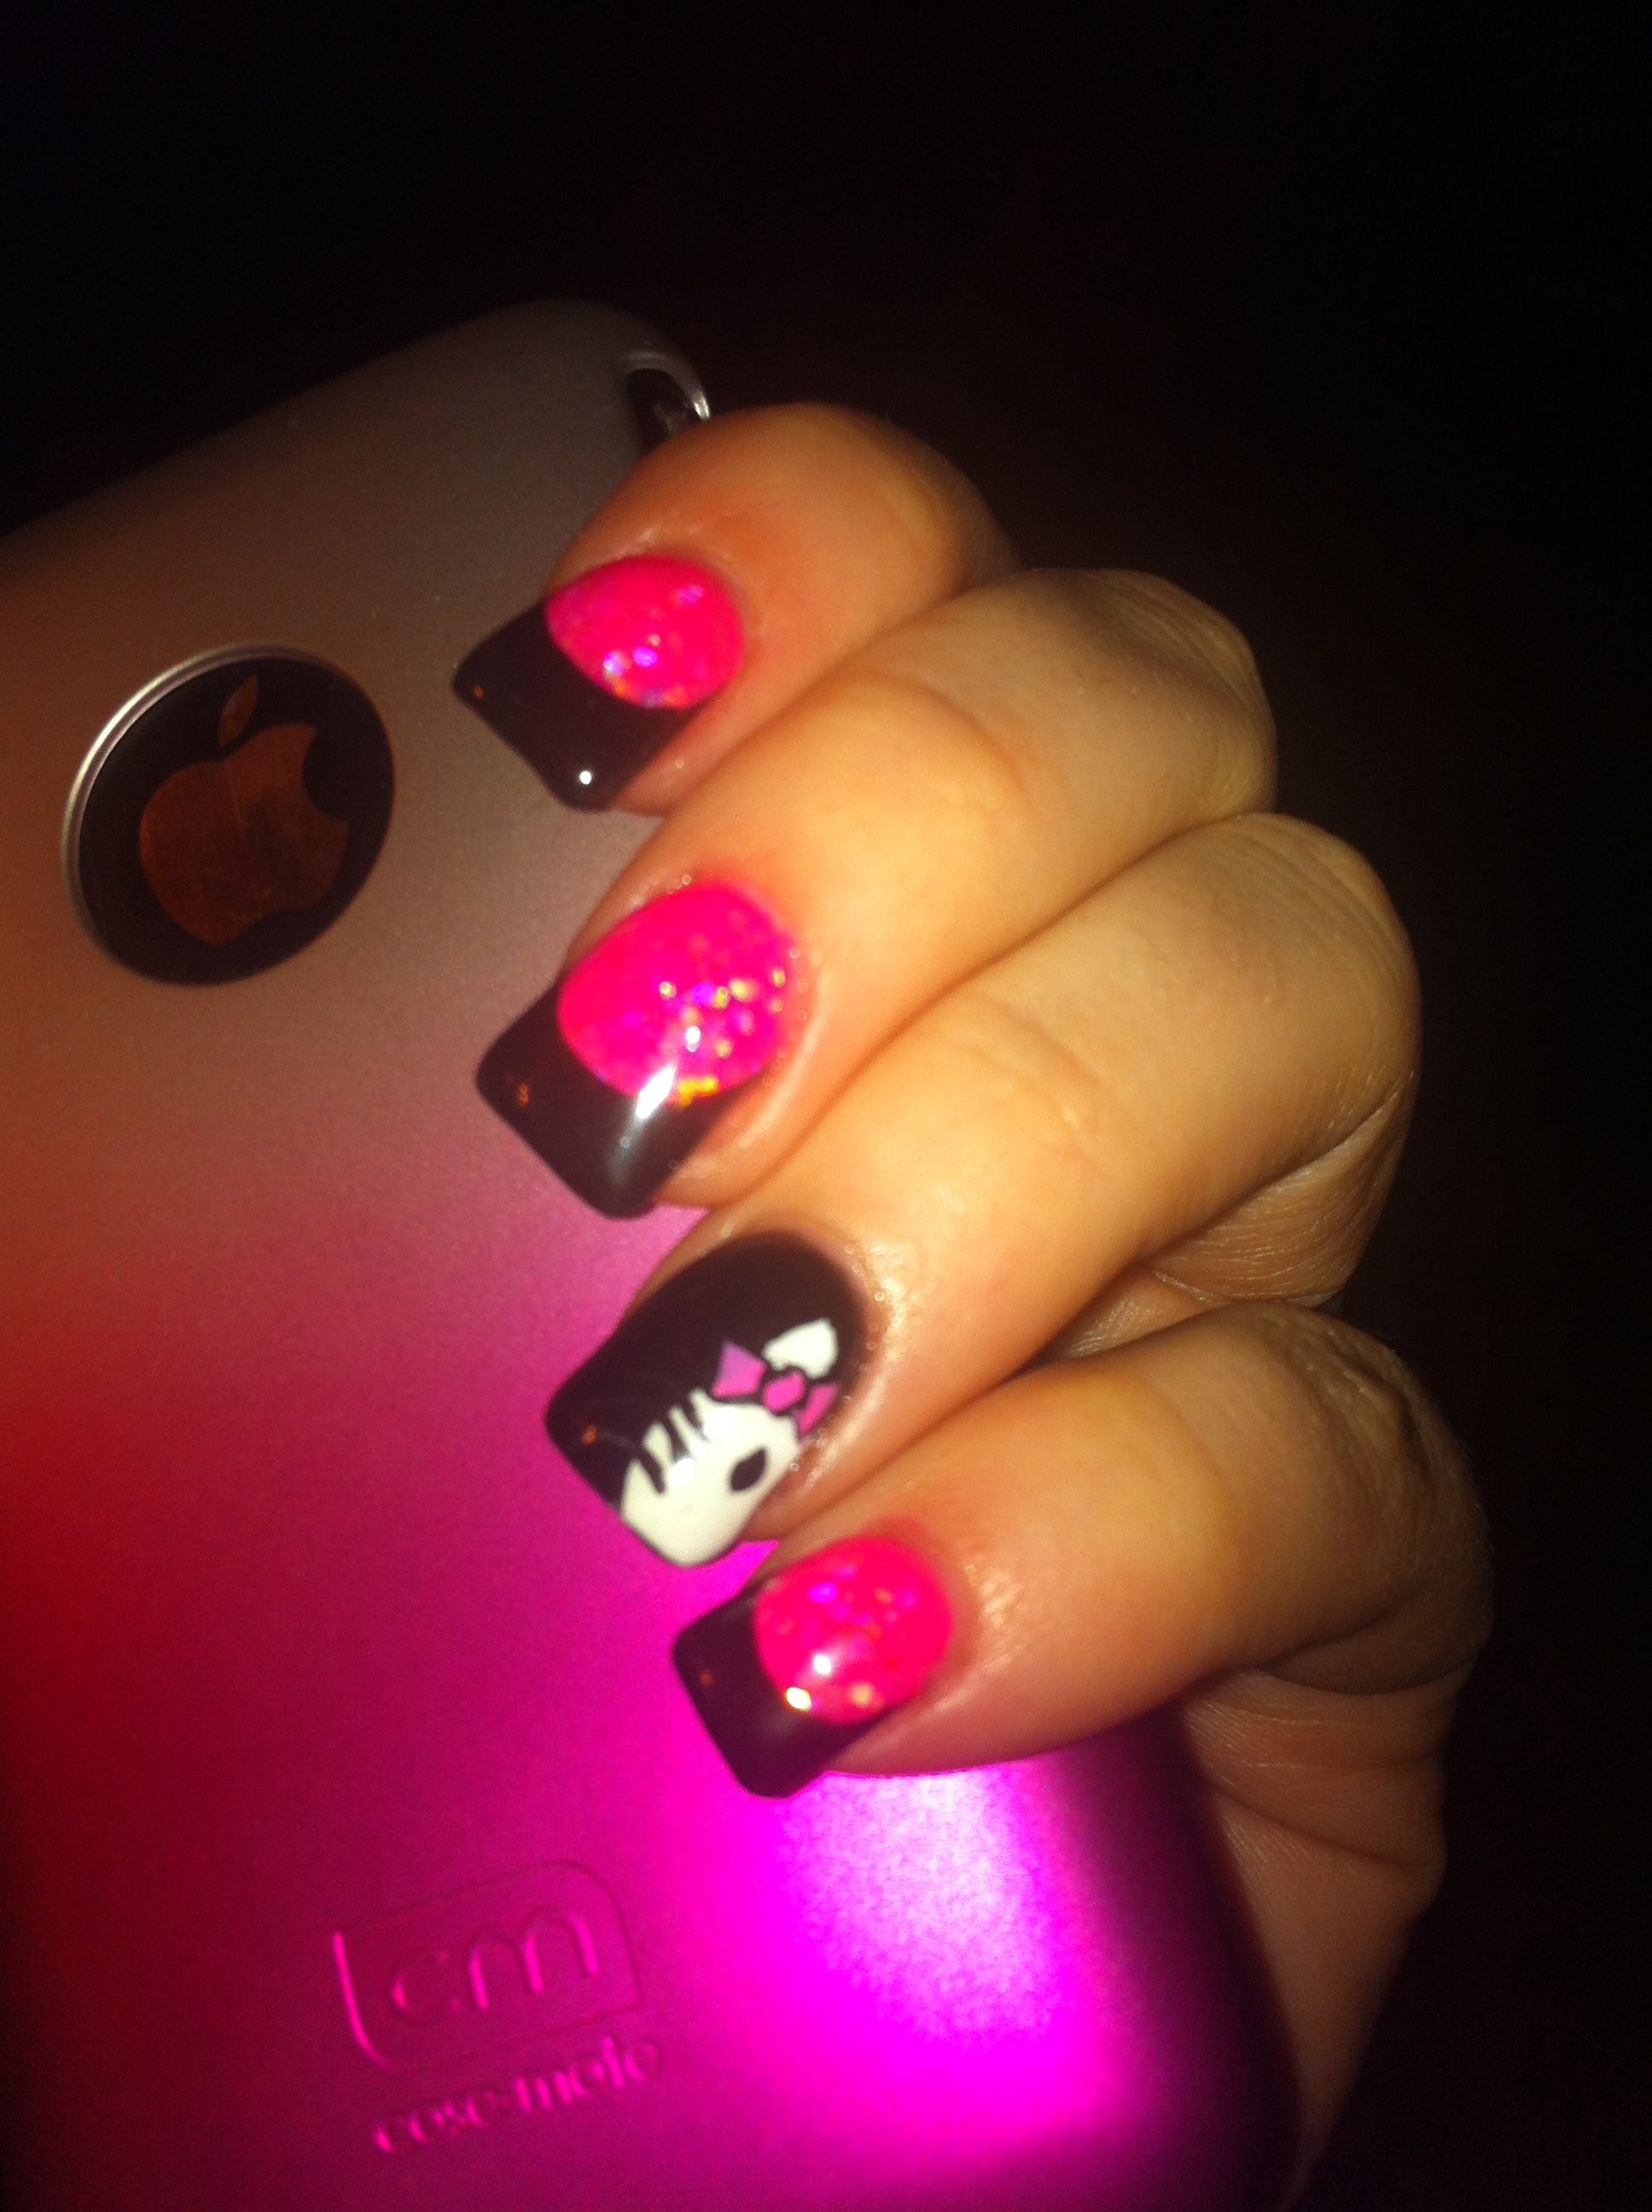 black tips acrylic nails with hello kitty art and hot pink